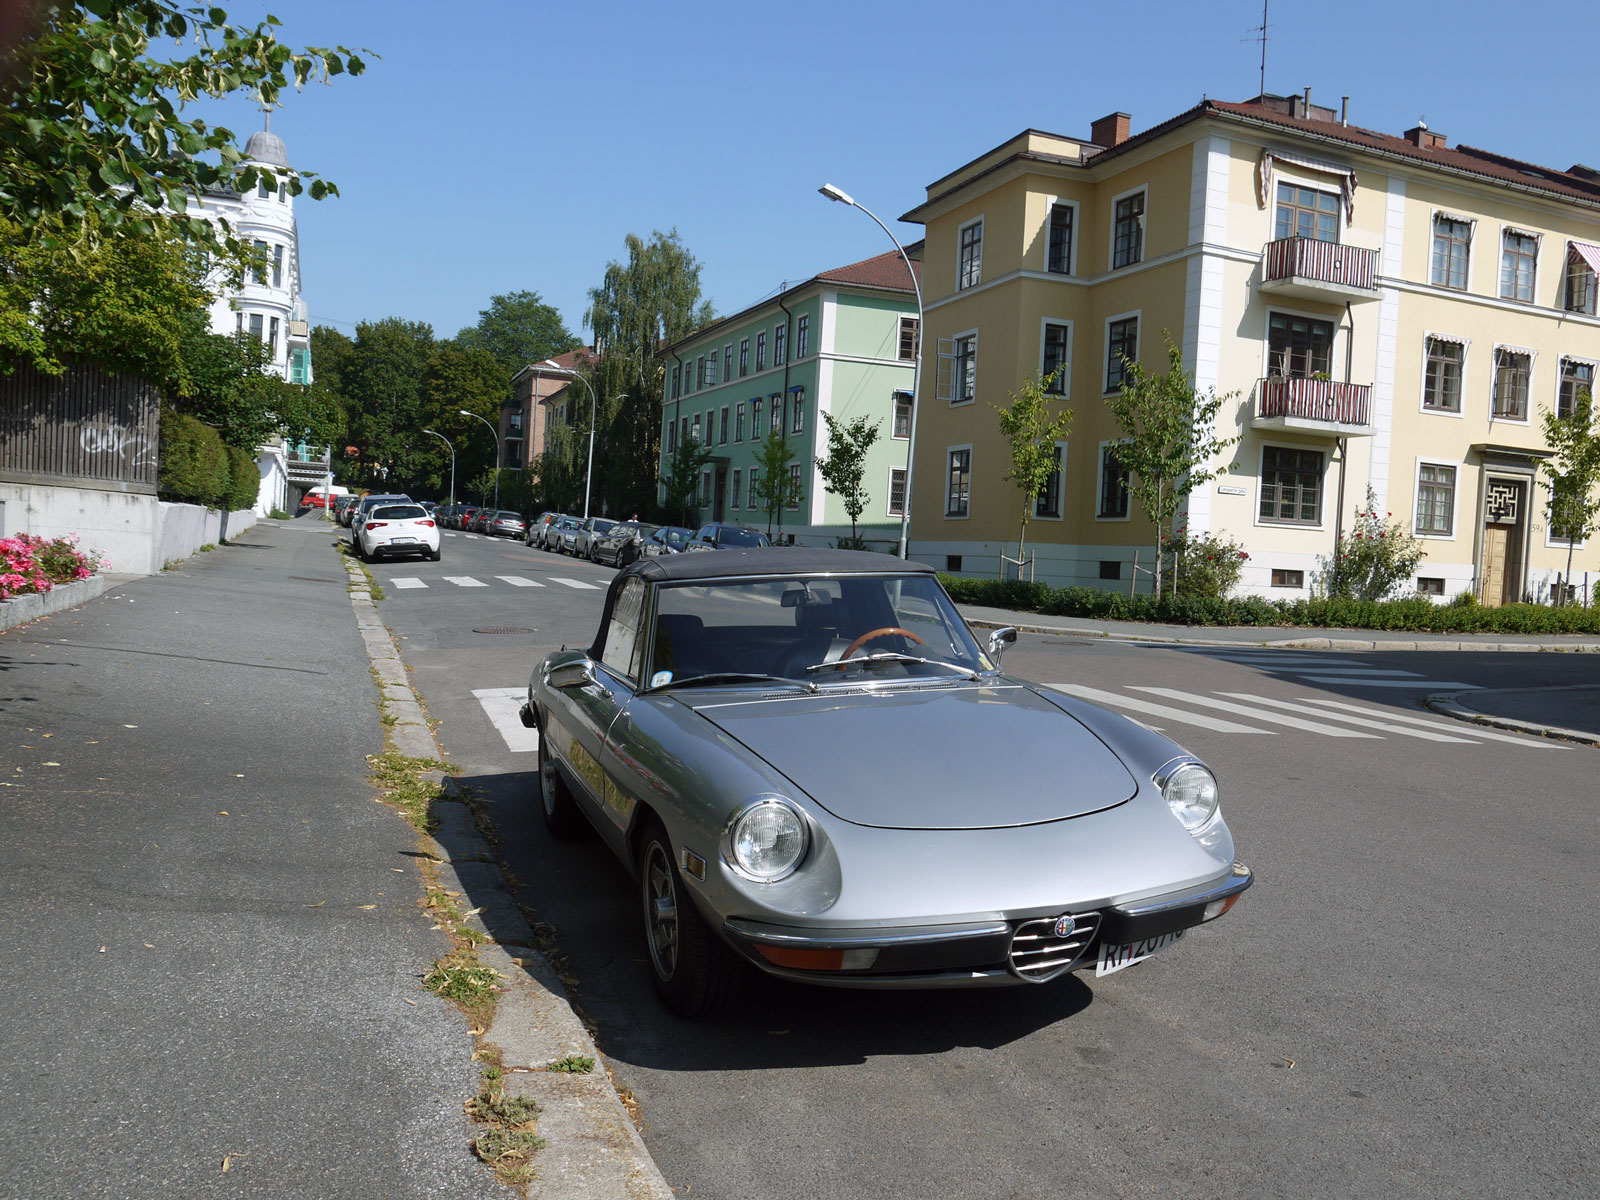 1973 Alfa Romeo Spider Italian sports car Oslo Norway